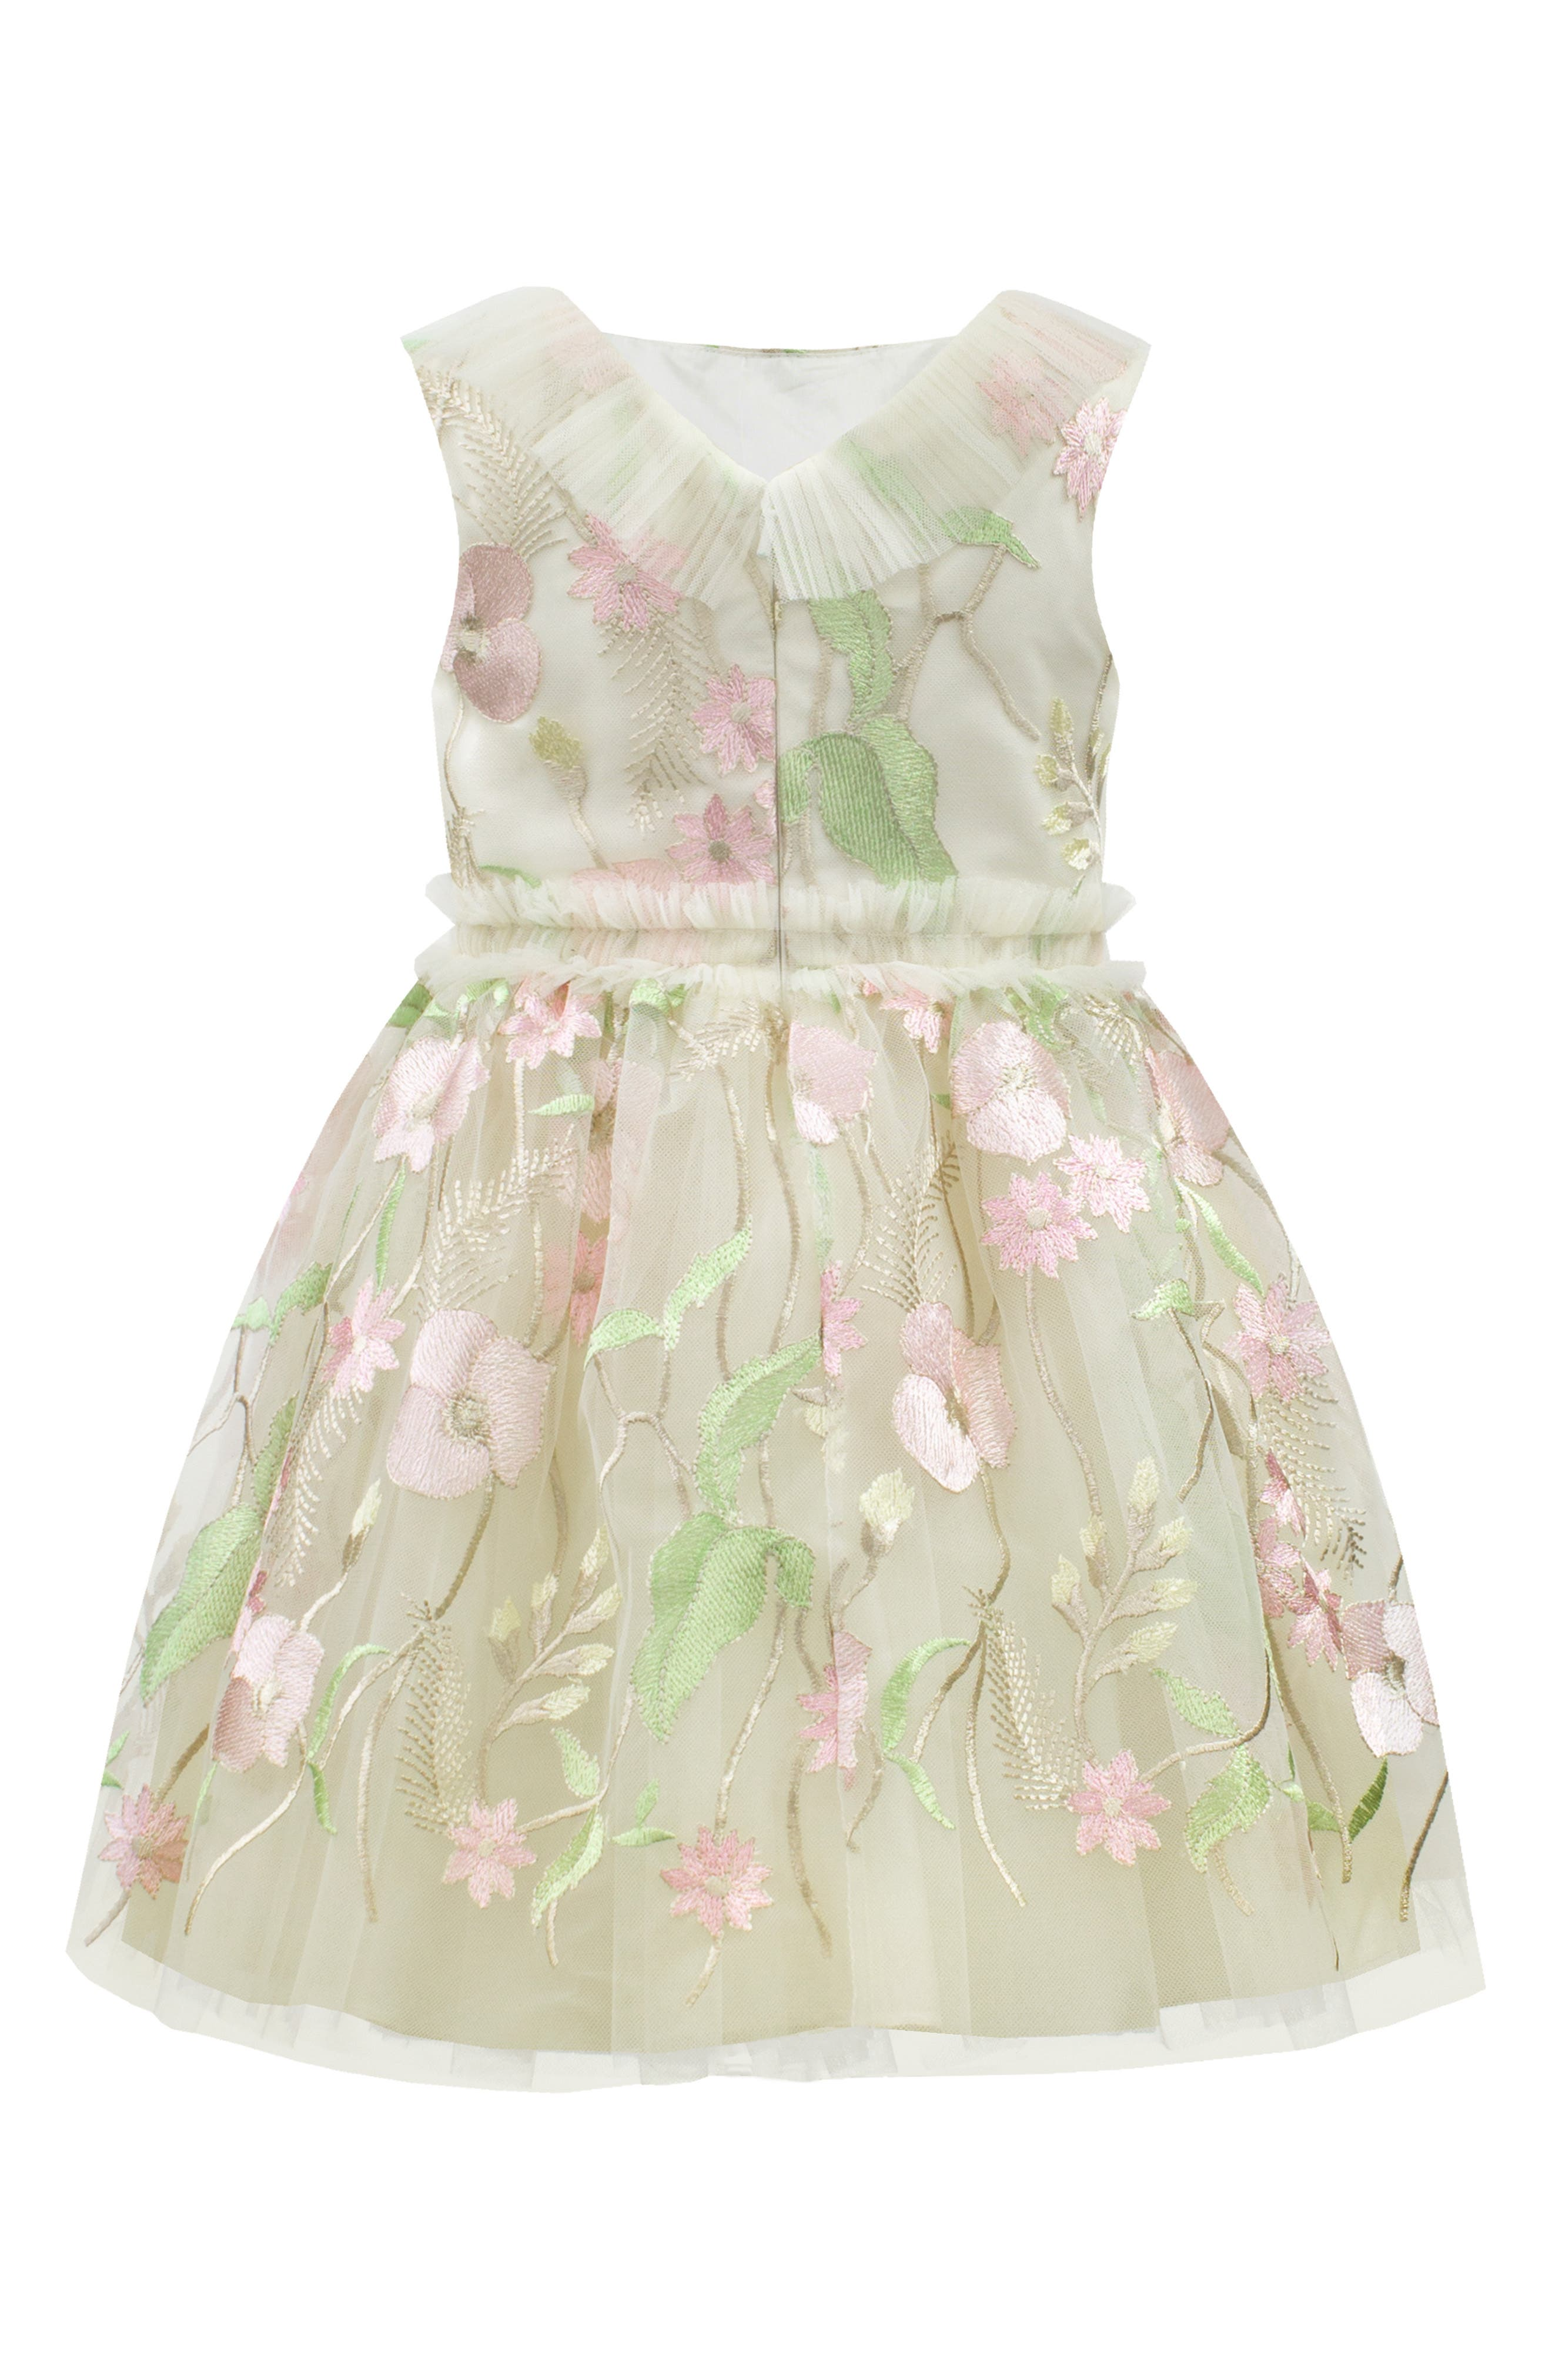 DAVID CHARLES,                             Pastel Embroidered Tulle Dress,                             Alternate thumbnail 2, color,                             IVORY/ PINK